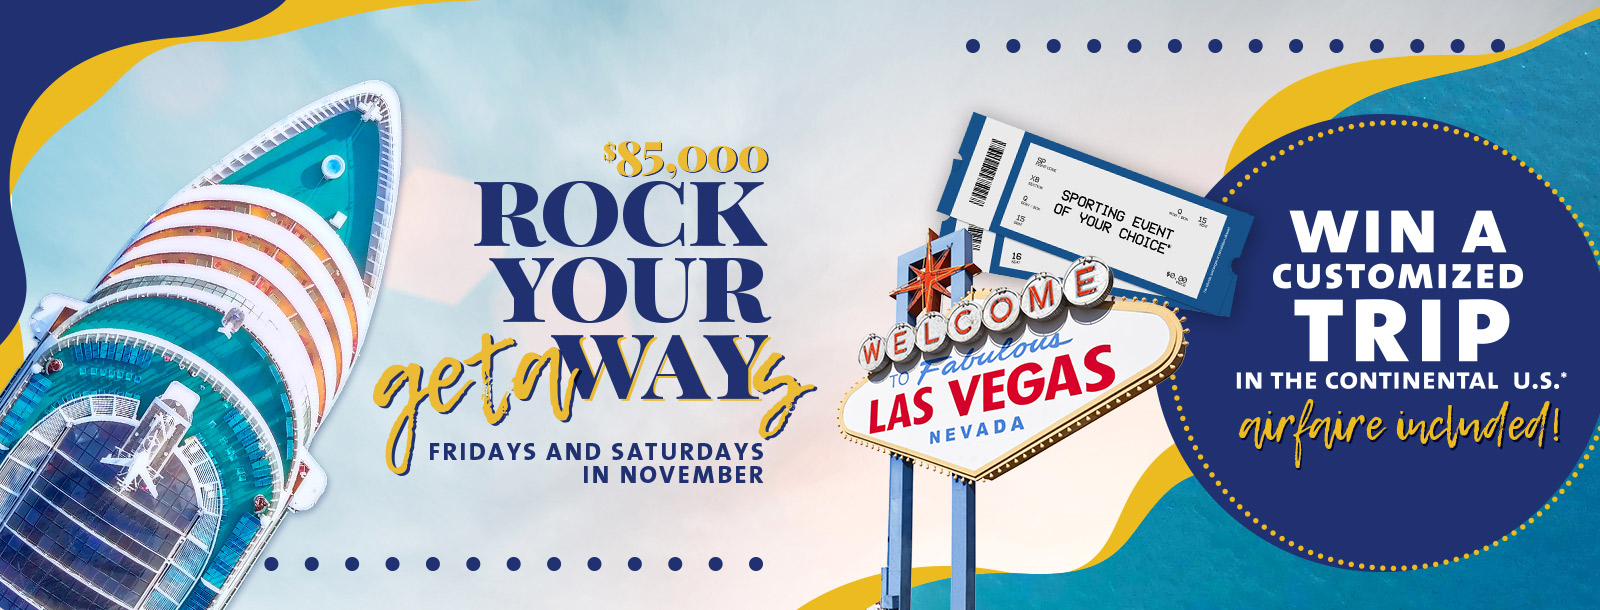 rock your way getaway